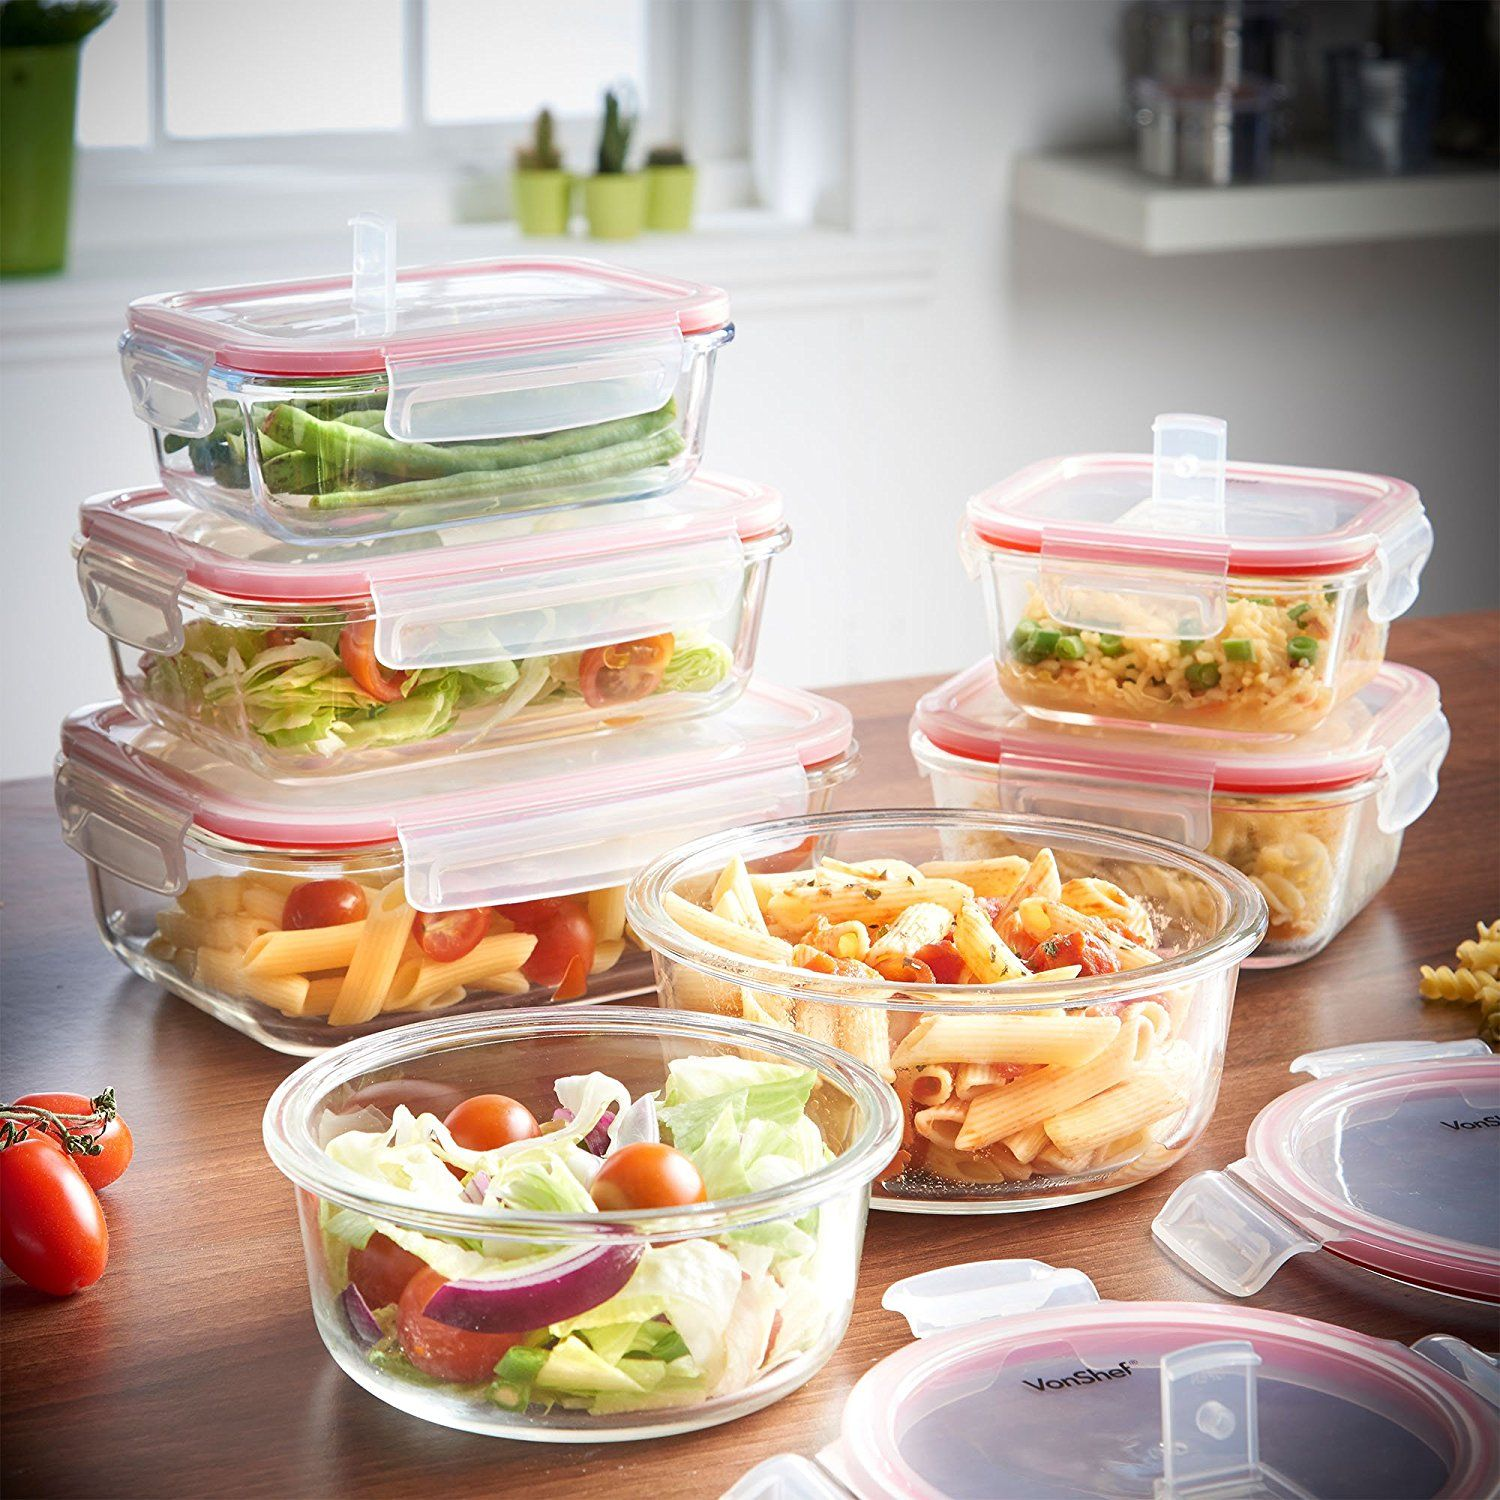 20 99 Vonshef 7 Piece Microwavable Gl Container Storage Set With Air Vent Lids